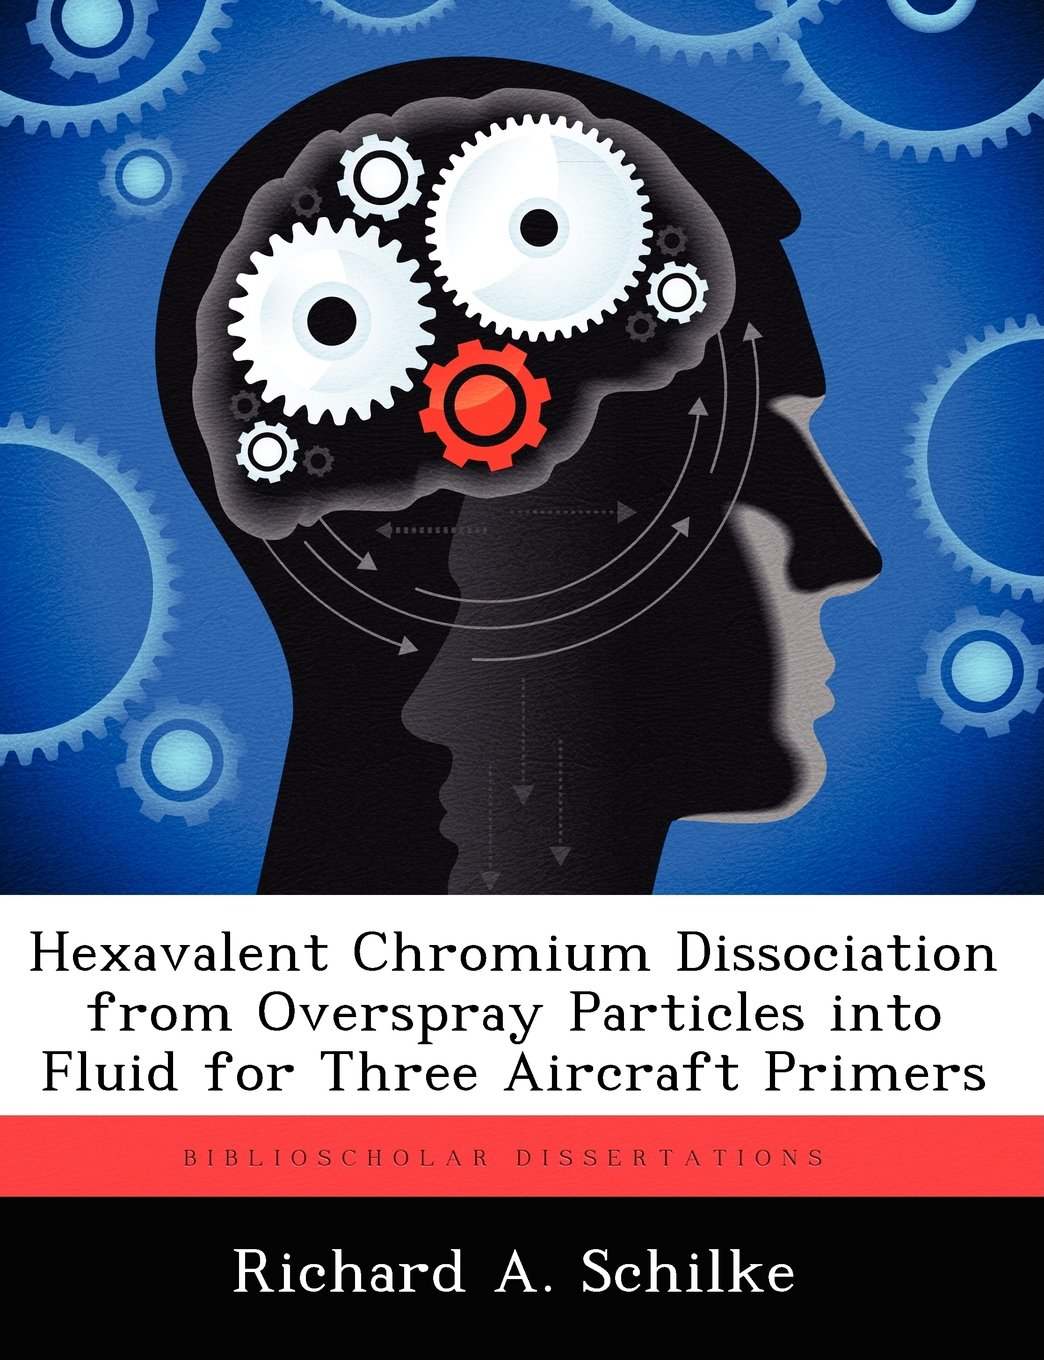 Download Hexavalent Chromium Dissociation from Overspray Particles into Fluid for Three Aircraft Primers PDF